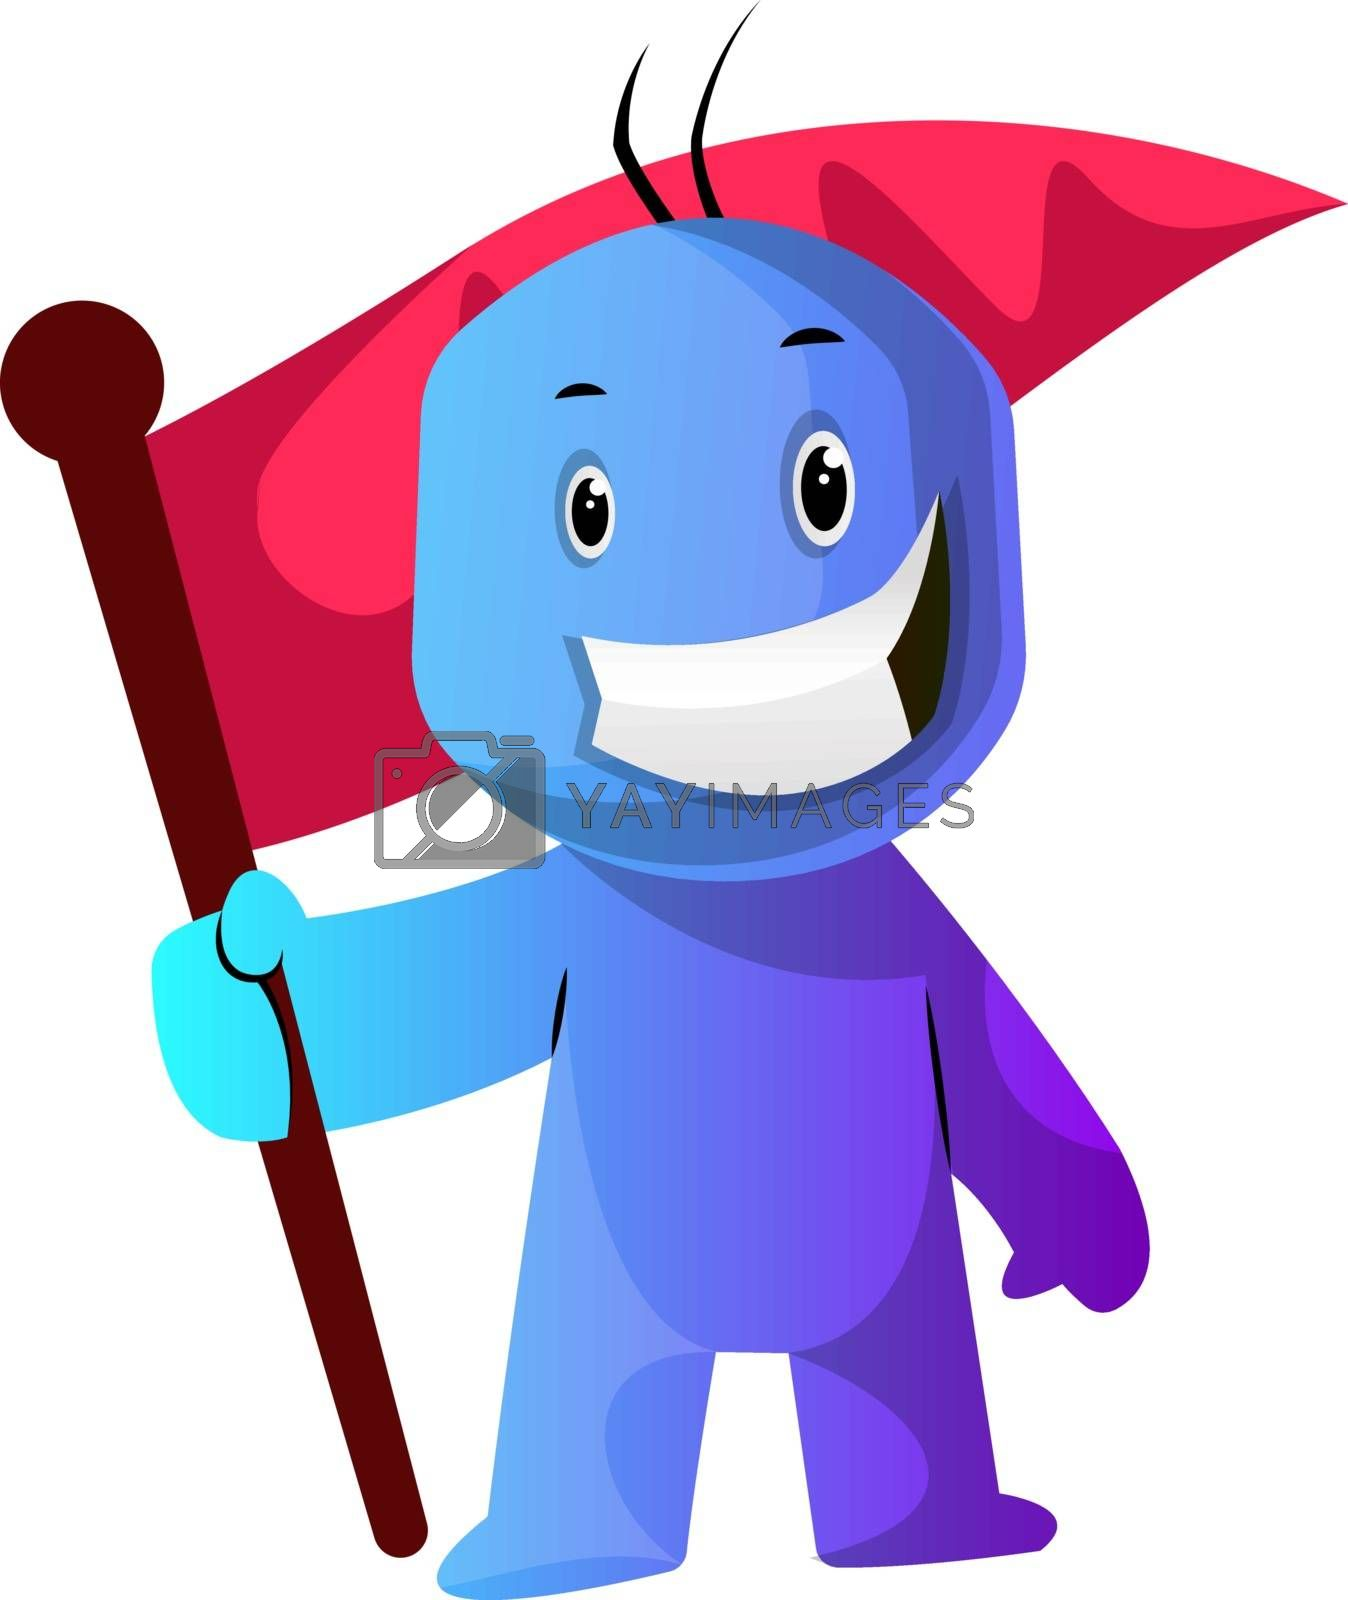 Royalty free image of Blue cartoon caracter with a flag illustration vector on white b by Morphart